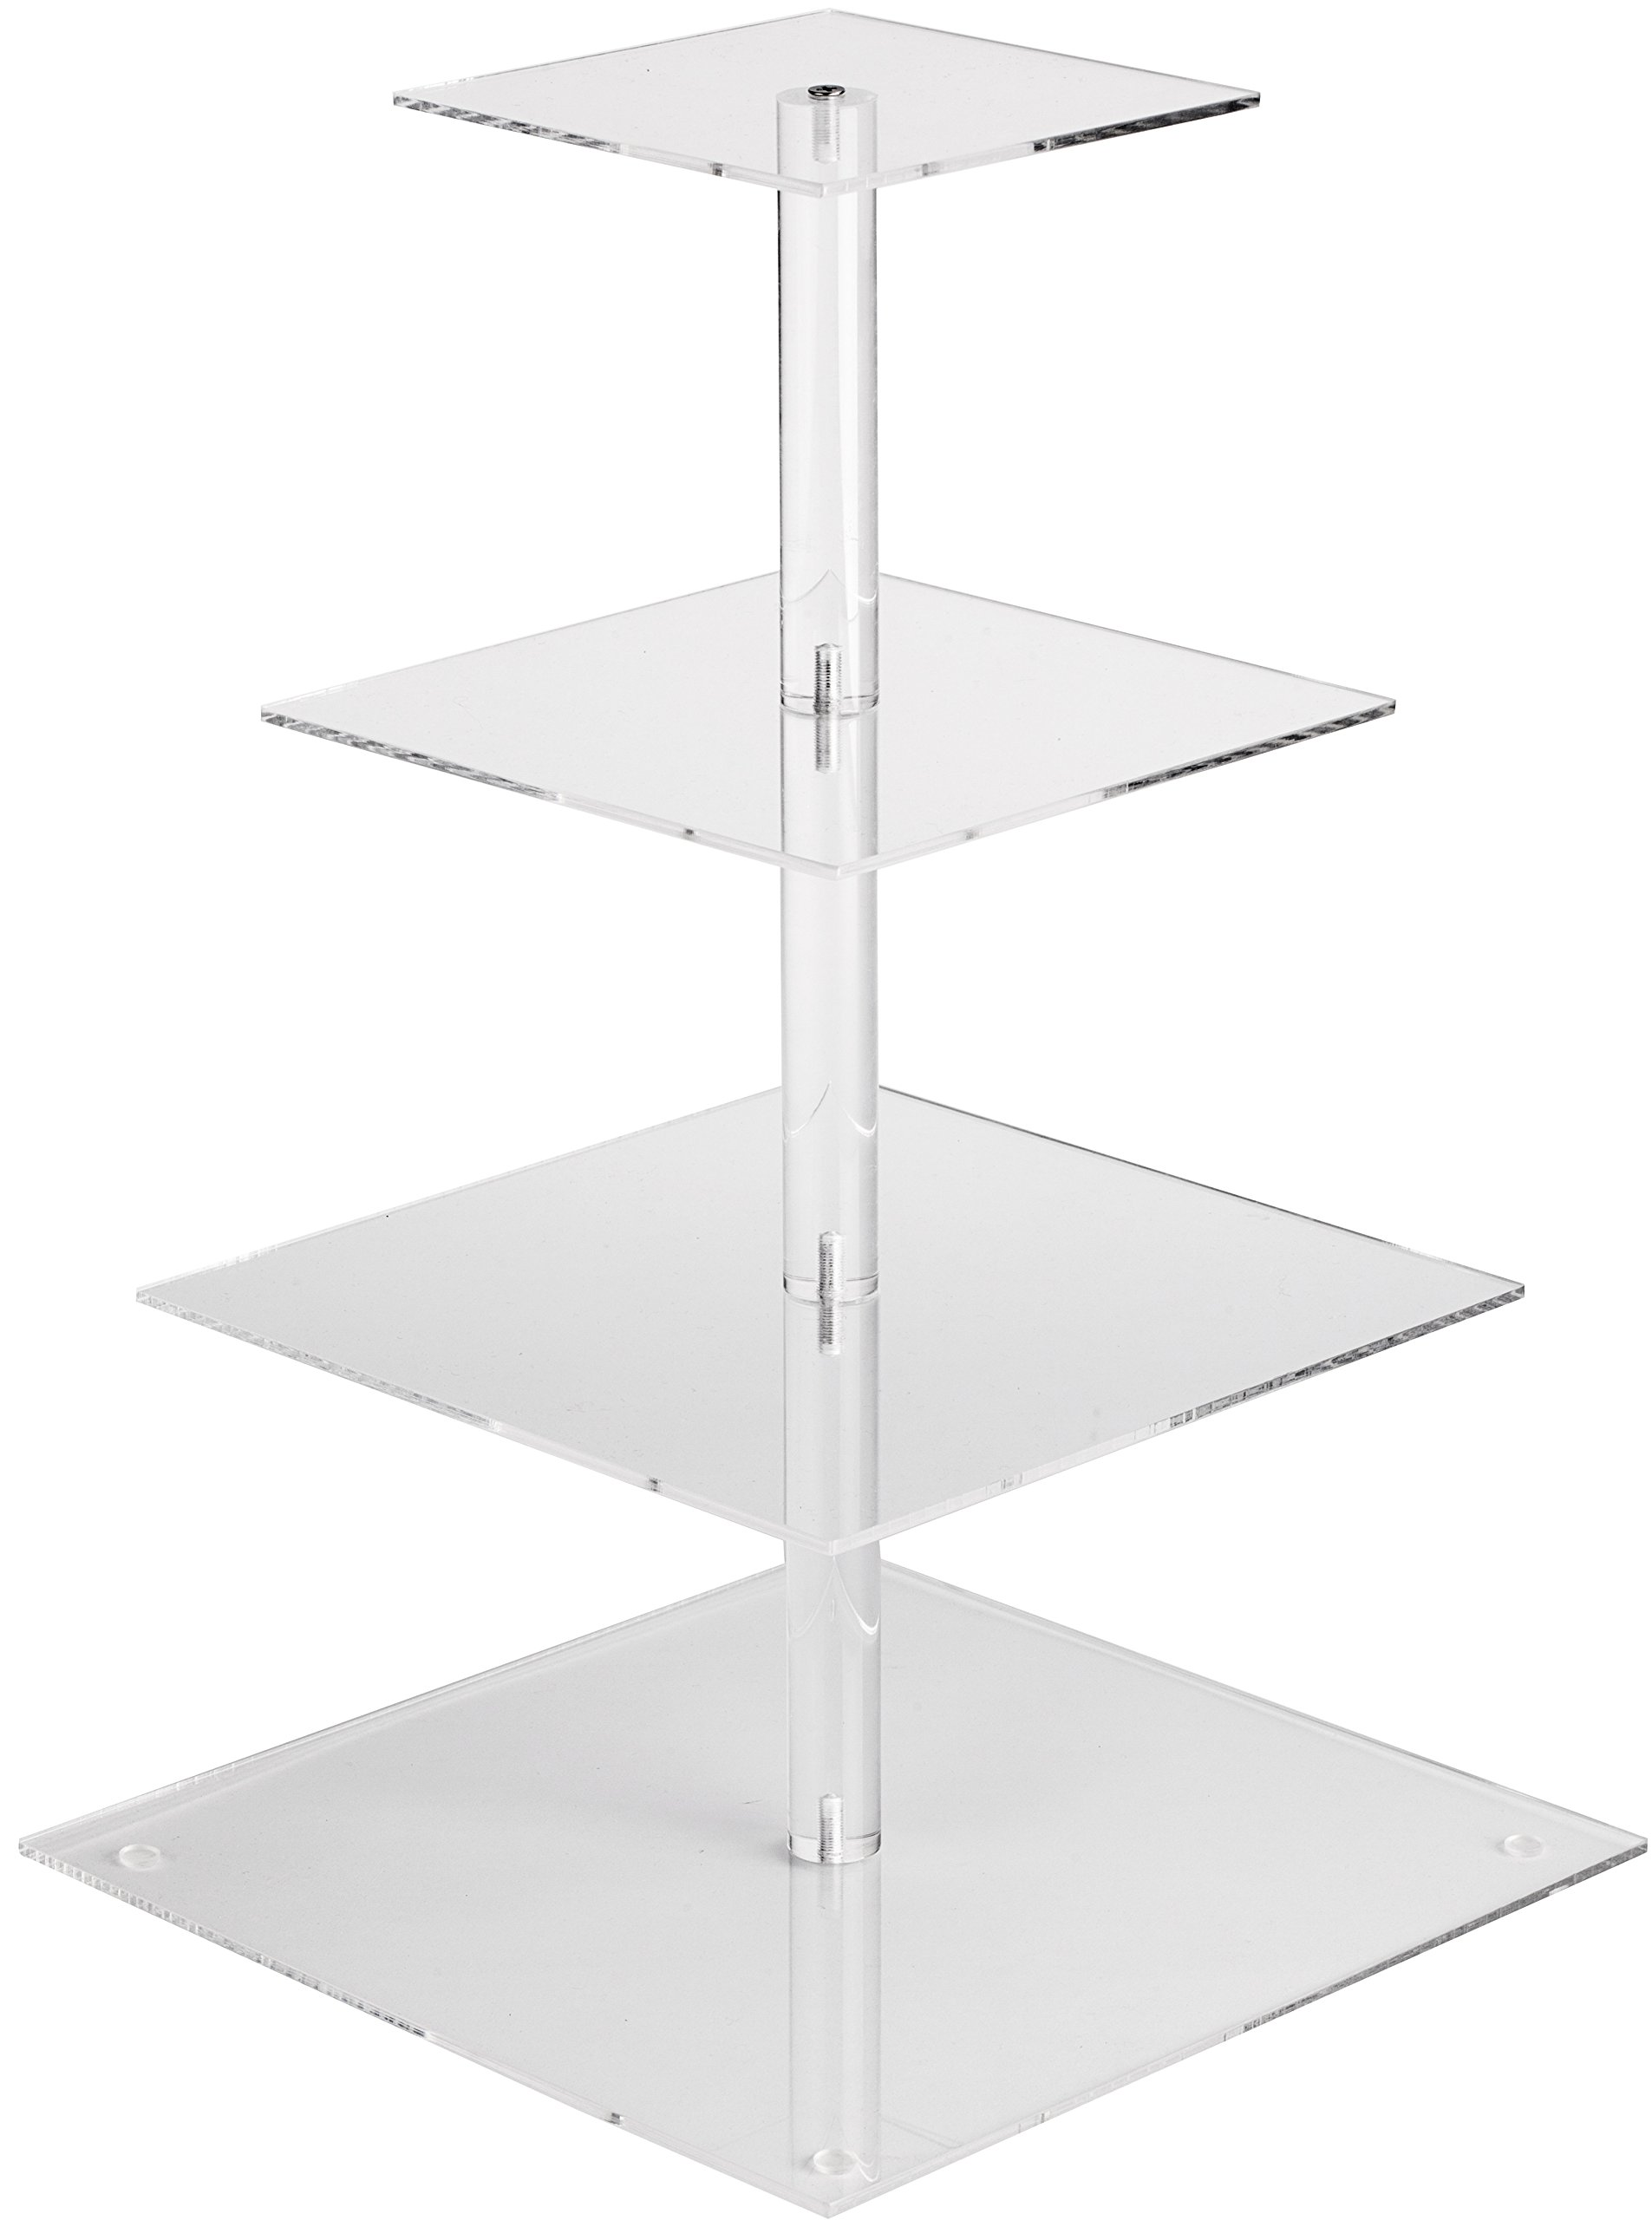 YestBuy 4 Tier Maypole Square Wedding Party Tree Tower Acrylic Cupcake Display Stand (18.7 Inches) ... by YestBuy